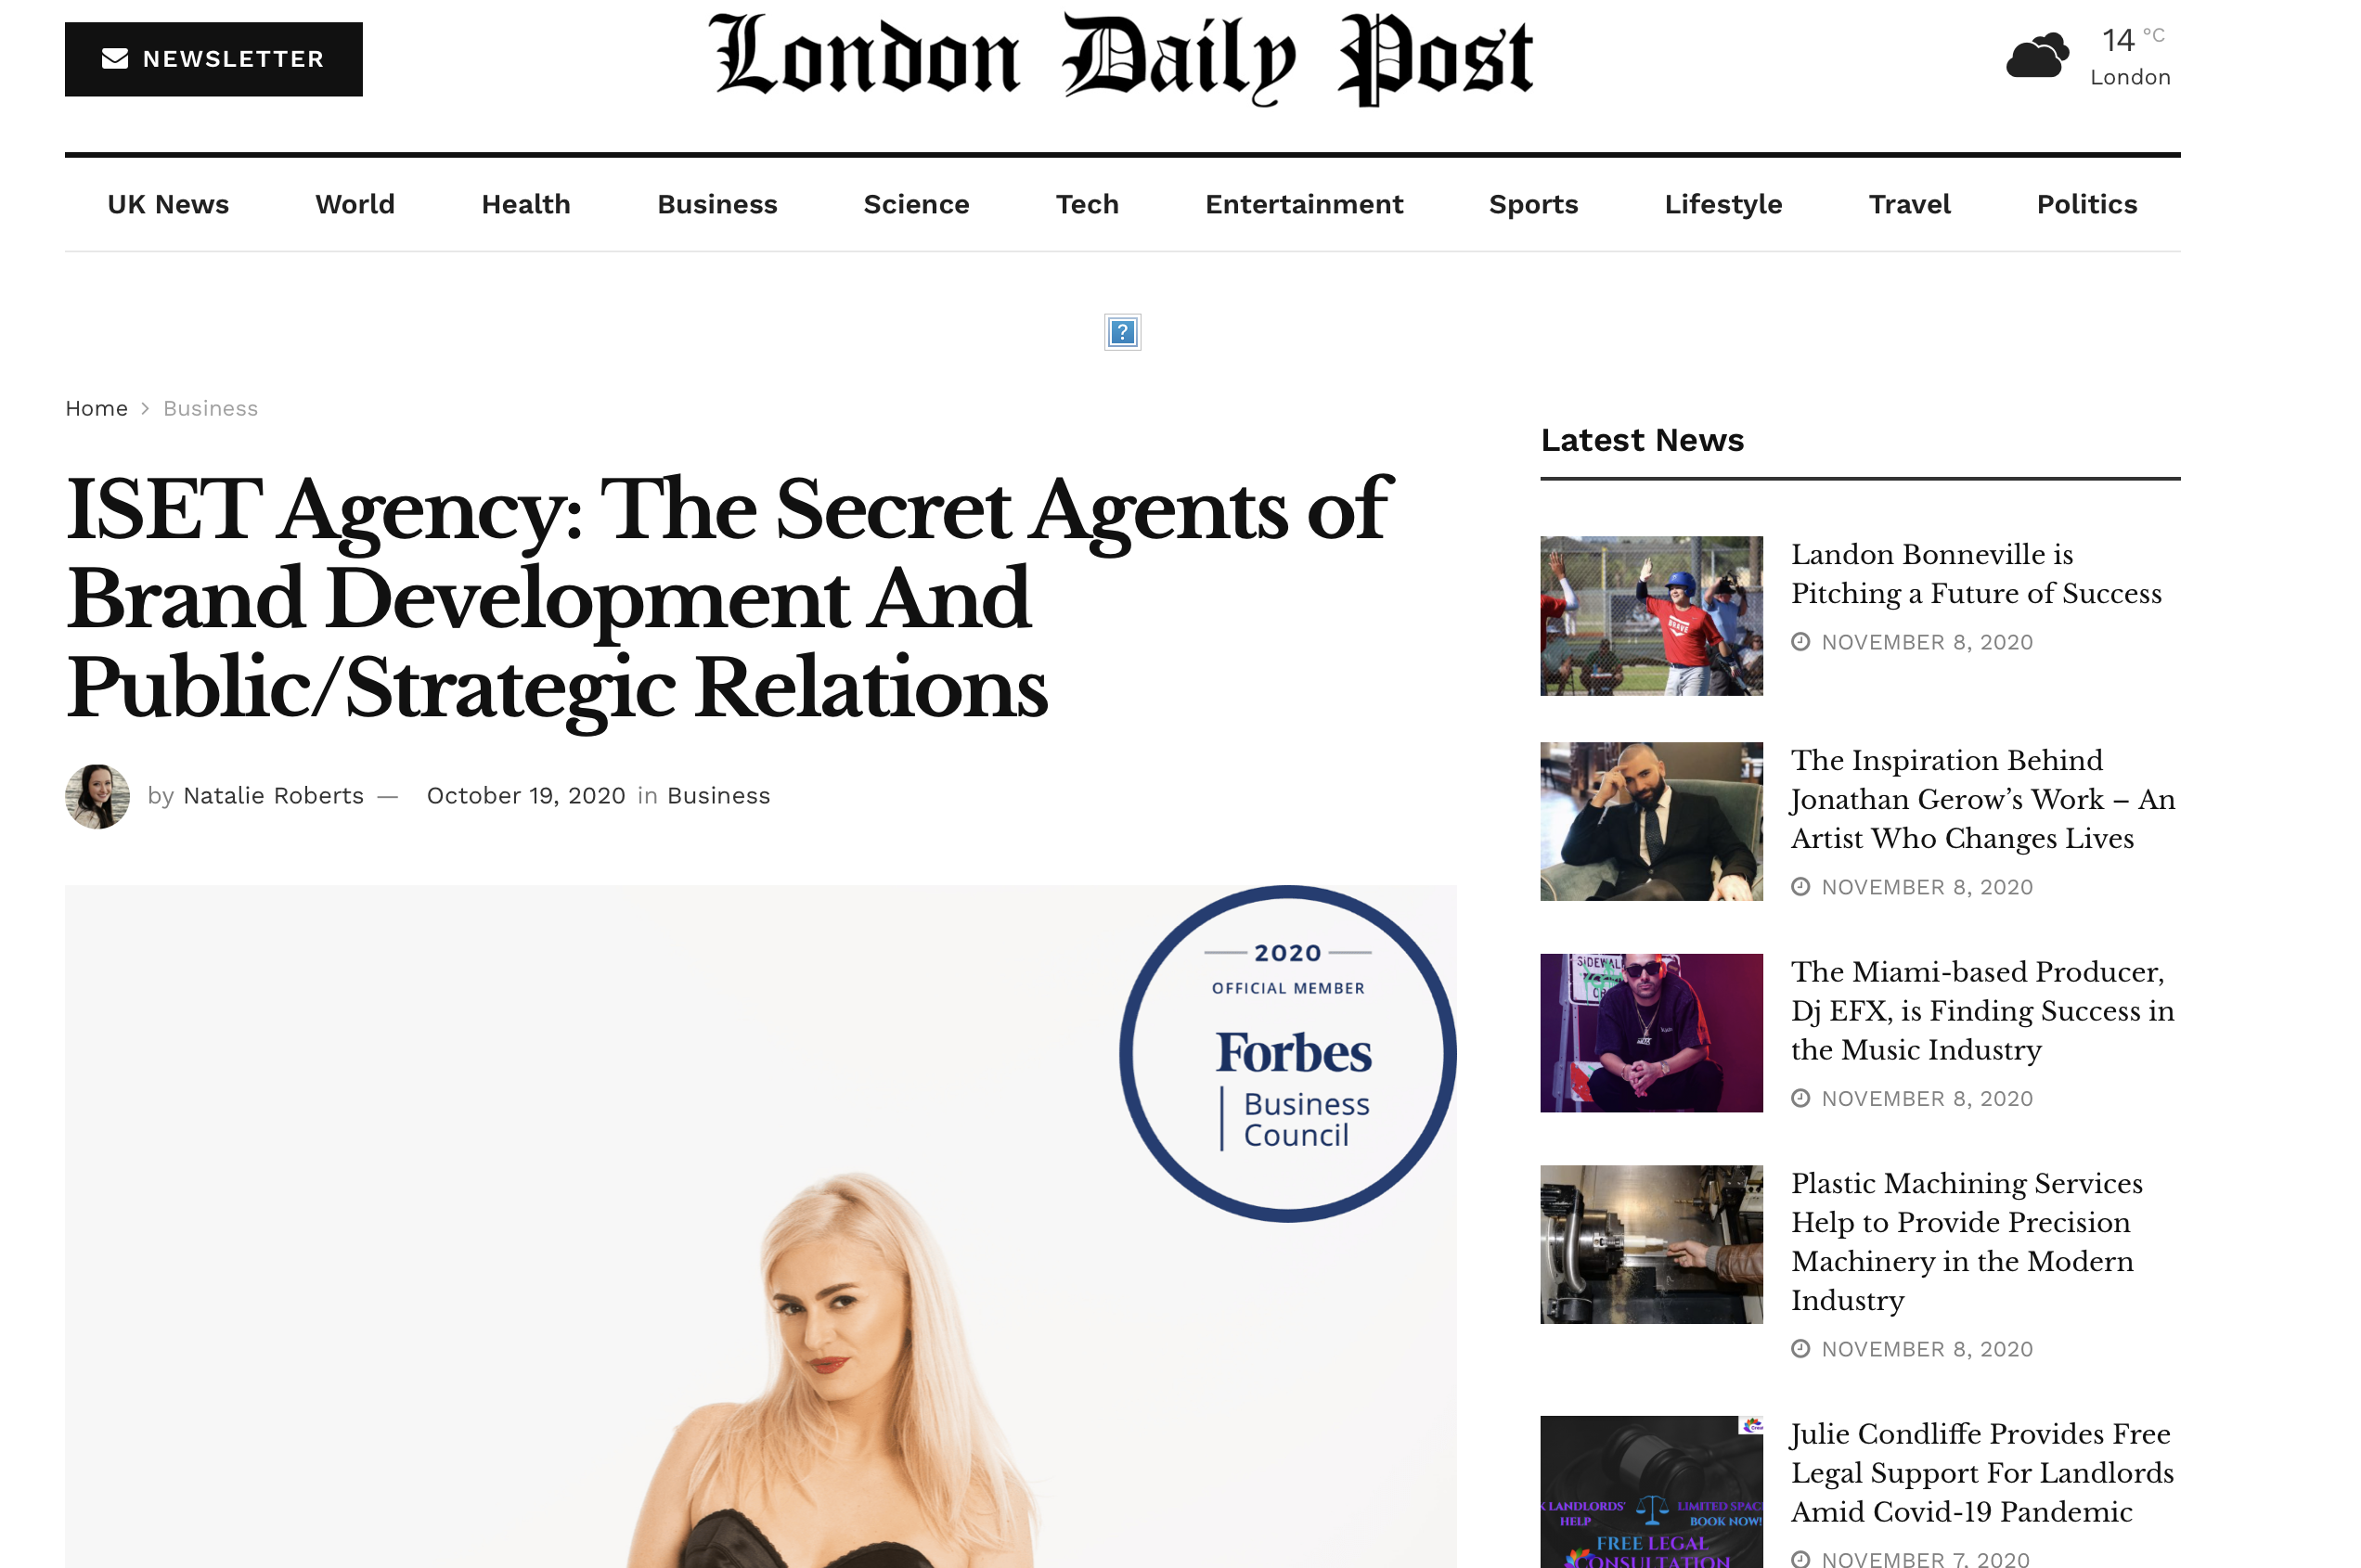 The London Daily Post